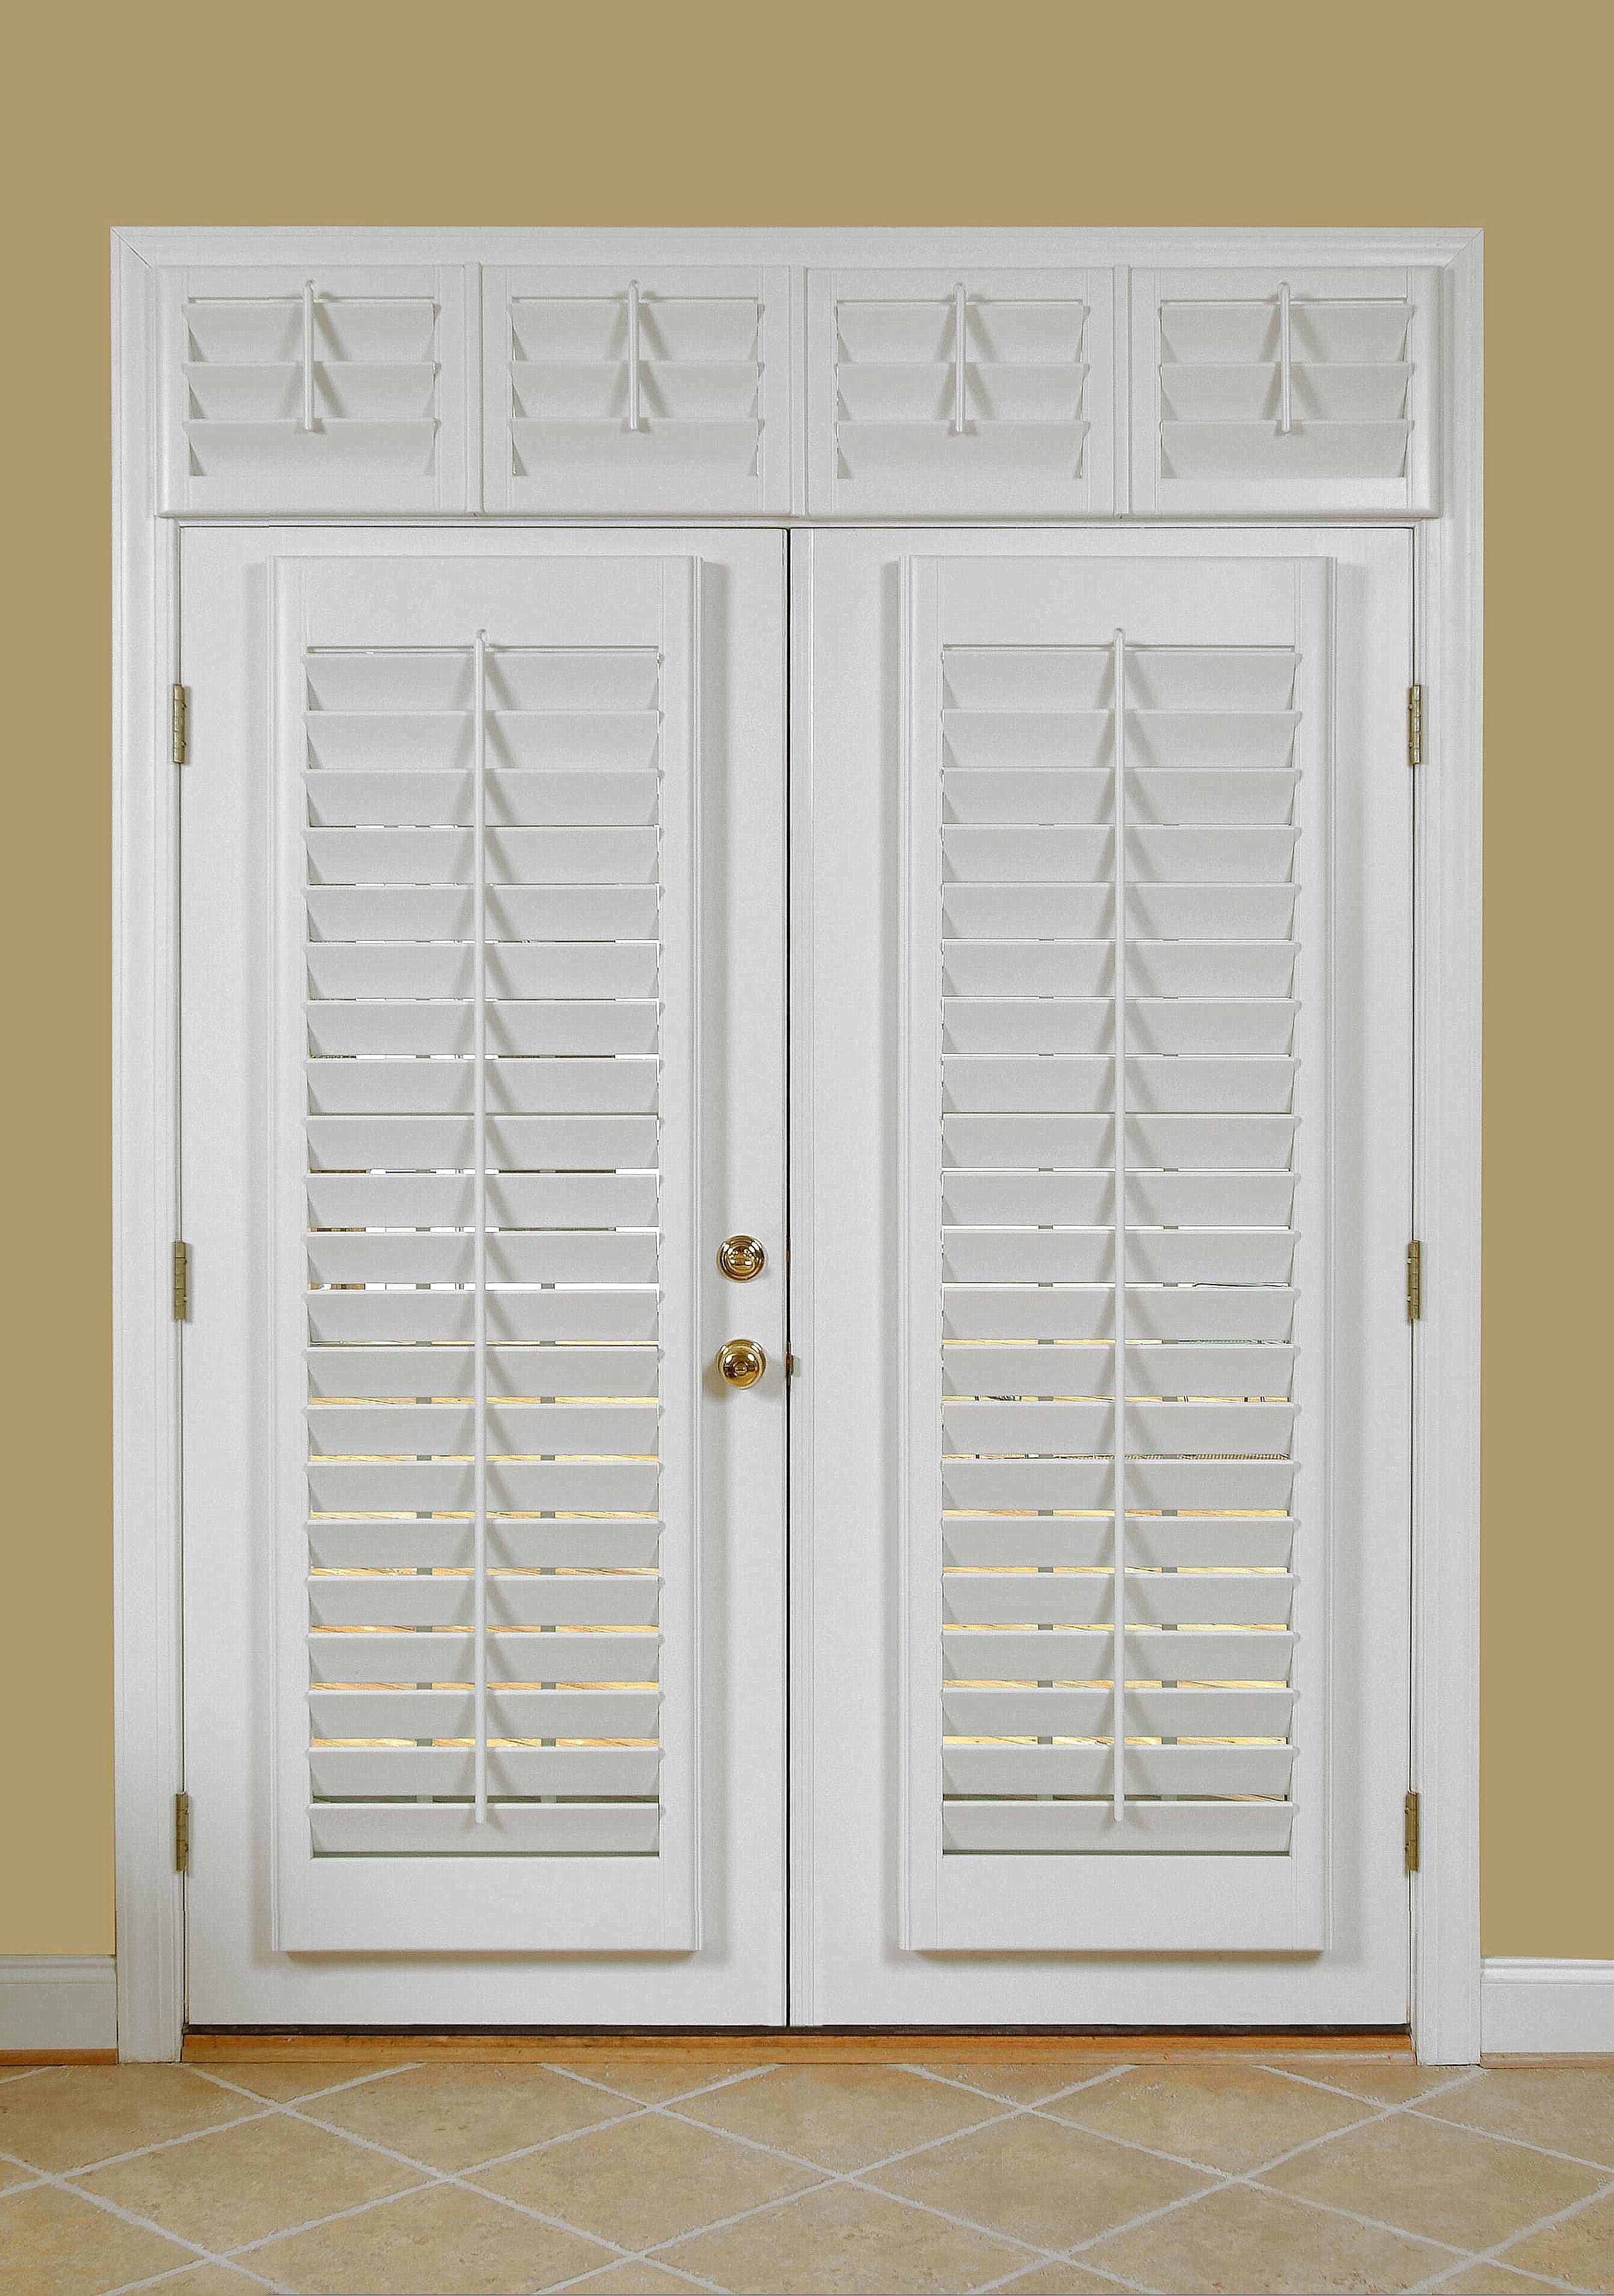 Classic, clean white shadowbox shutters on French doors